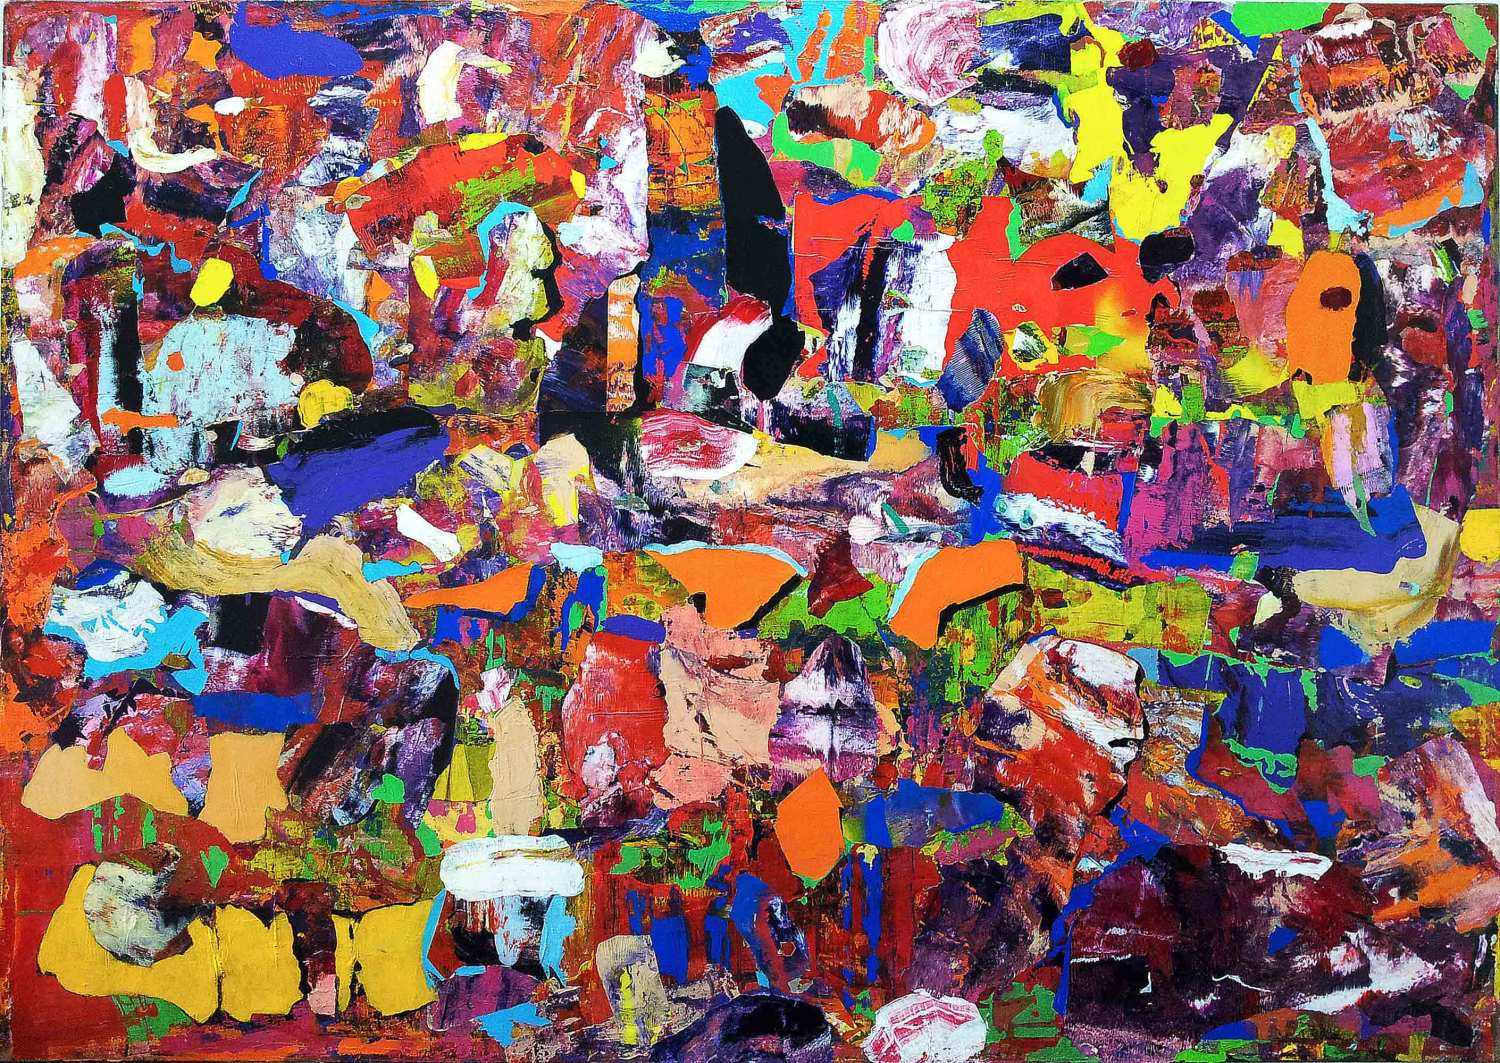 on the sunny side of the street - 120 x 170 cm - acrylic and collage on printed linen - 2015